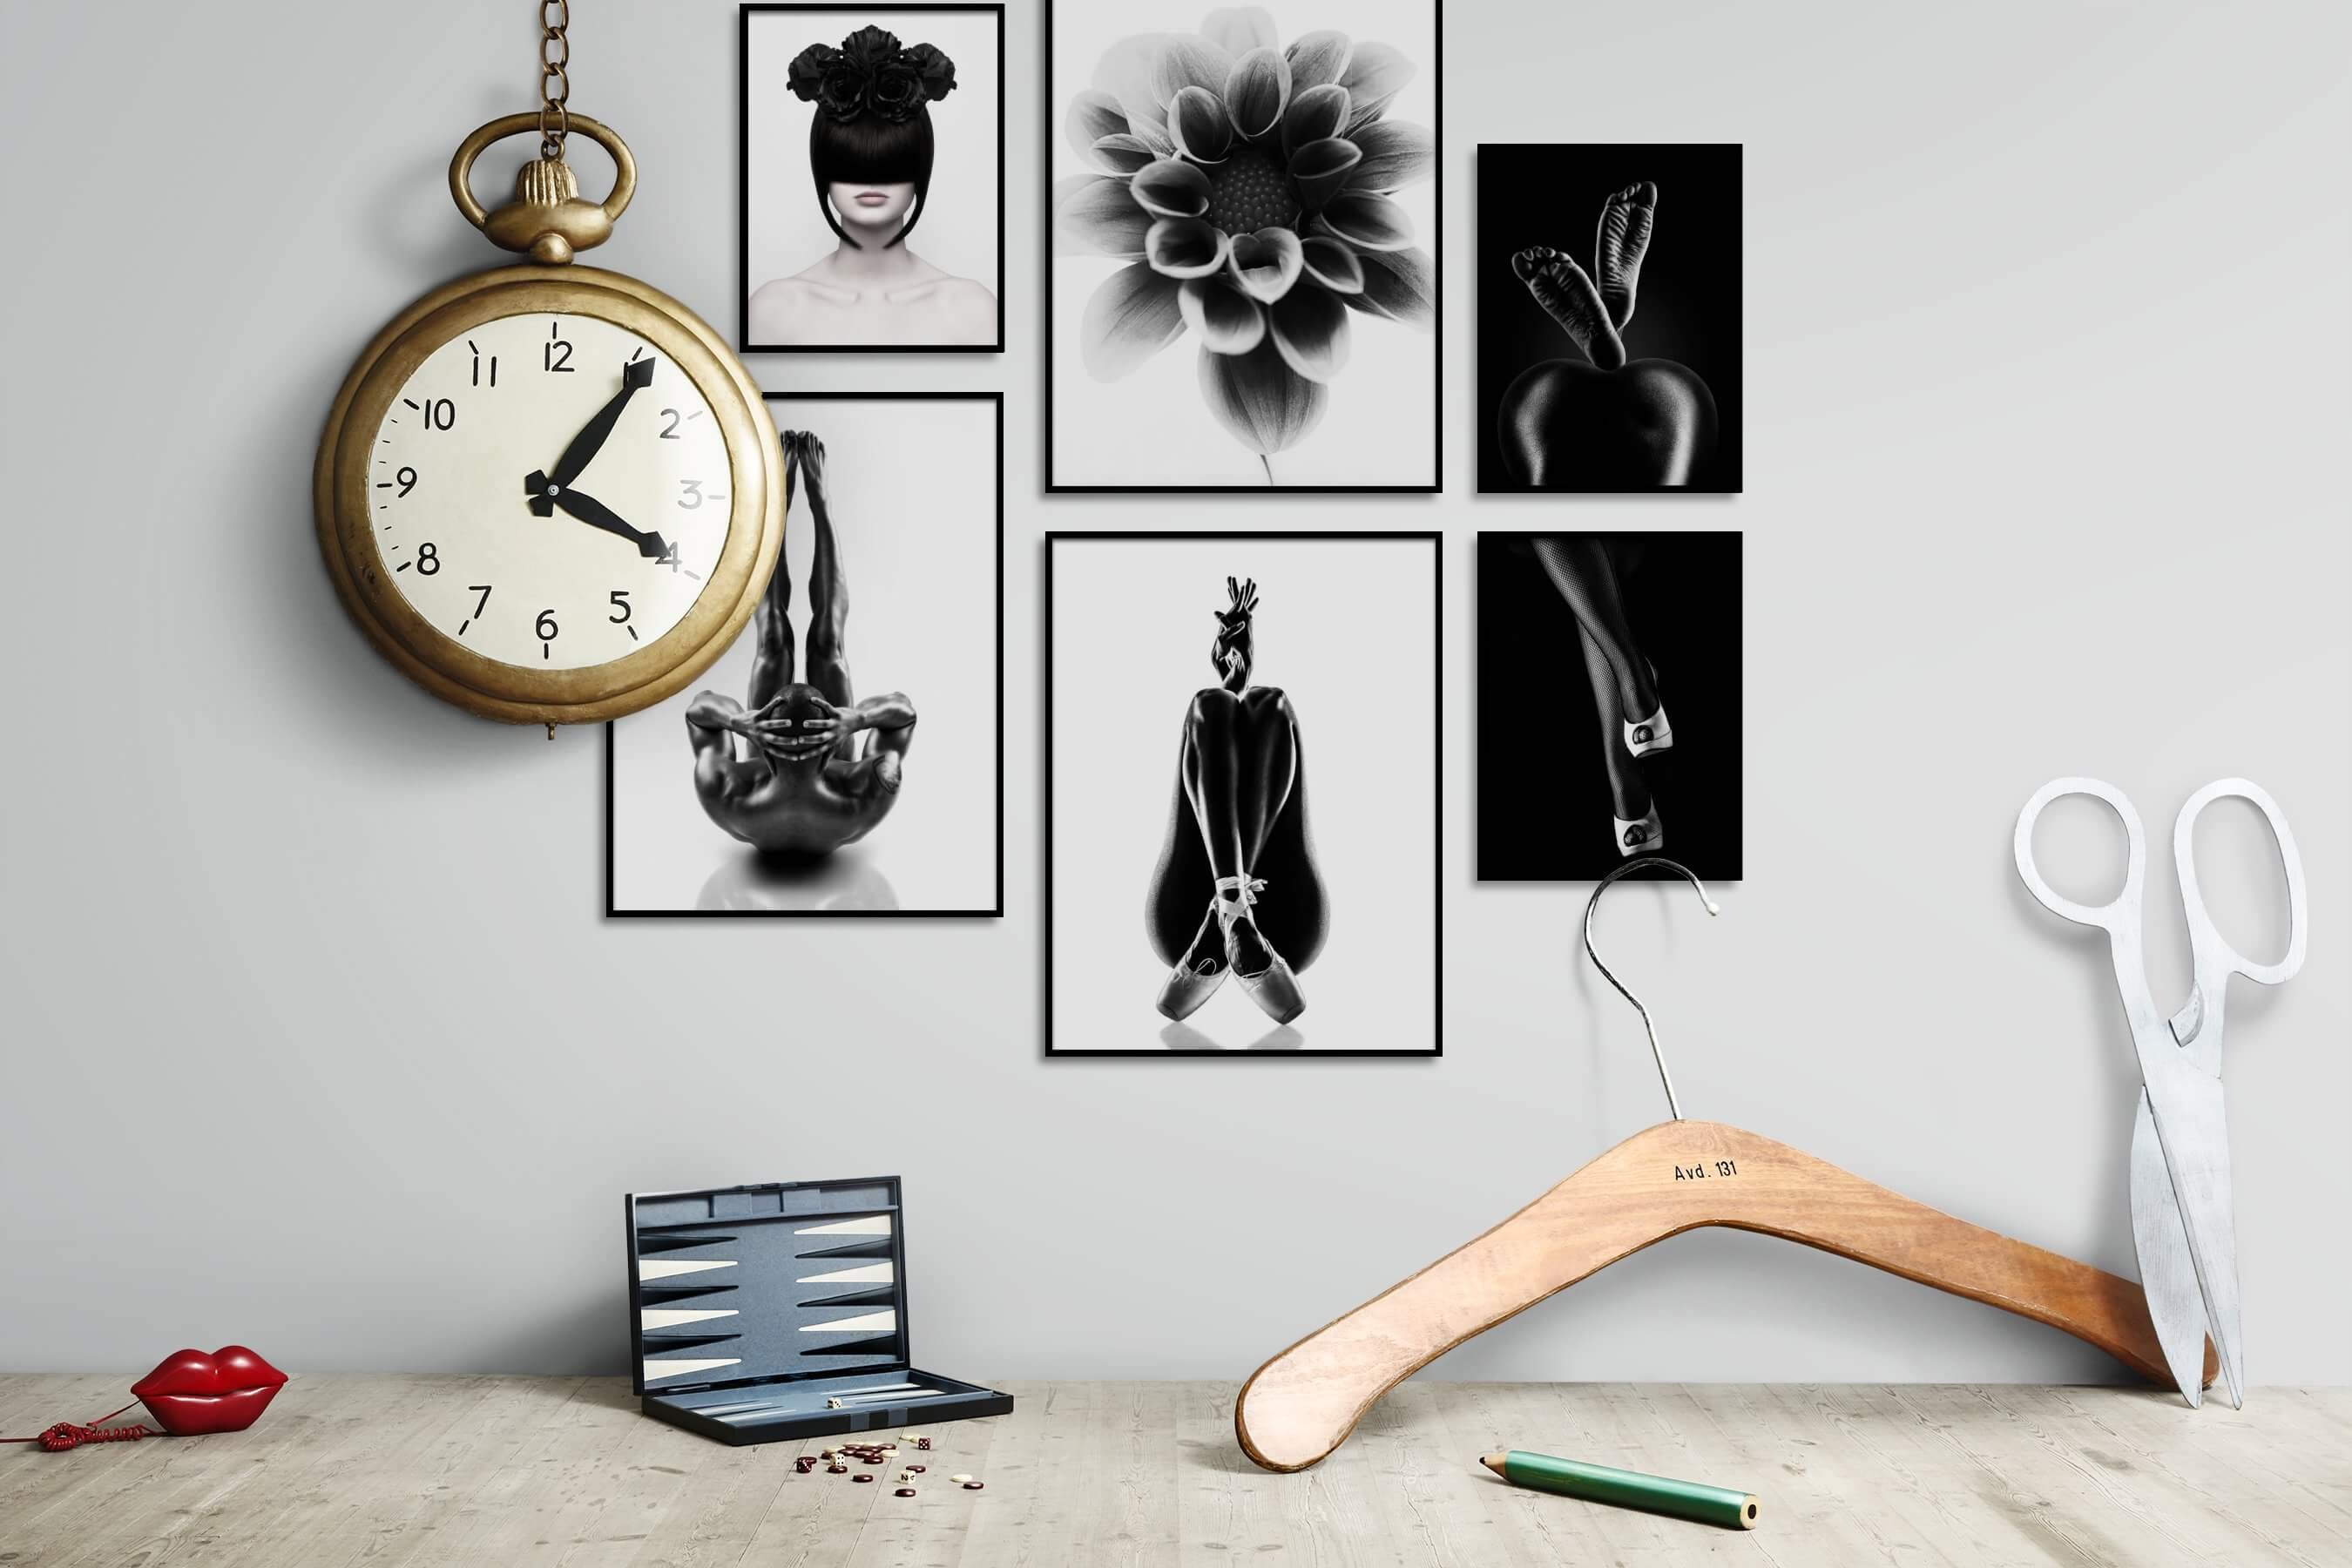 Gallery wall idea with six framed pictures arranged on a wall depicting Fashion & Beauty, Bright Tones, Black & White, For the Moderate, Flowers & Plants, For the Minimalist, Mindfulness, and Dark Tones